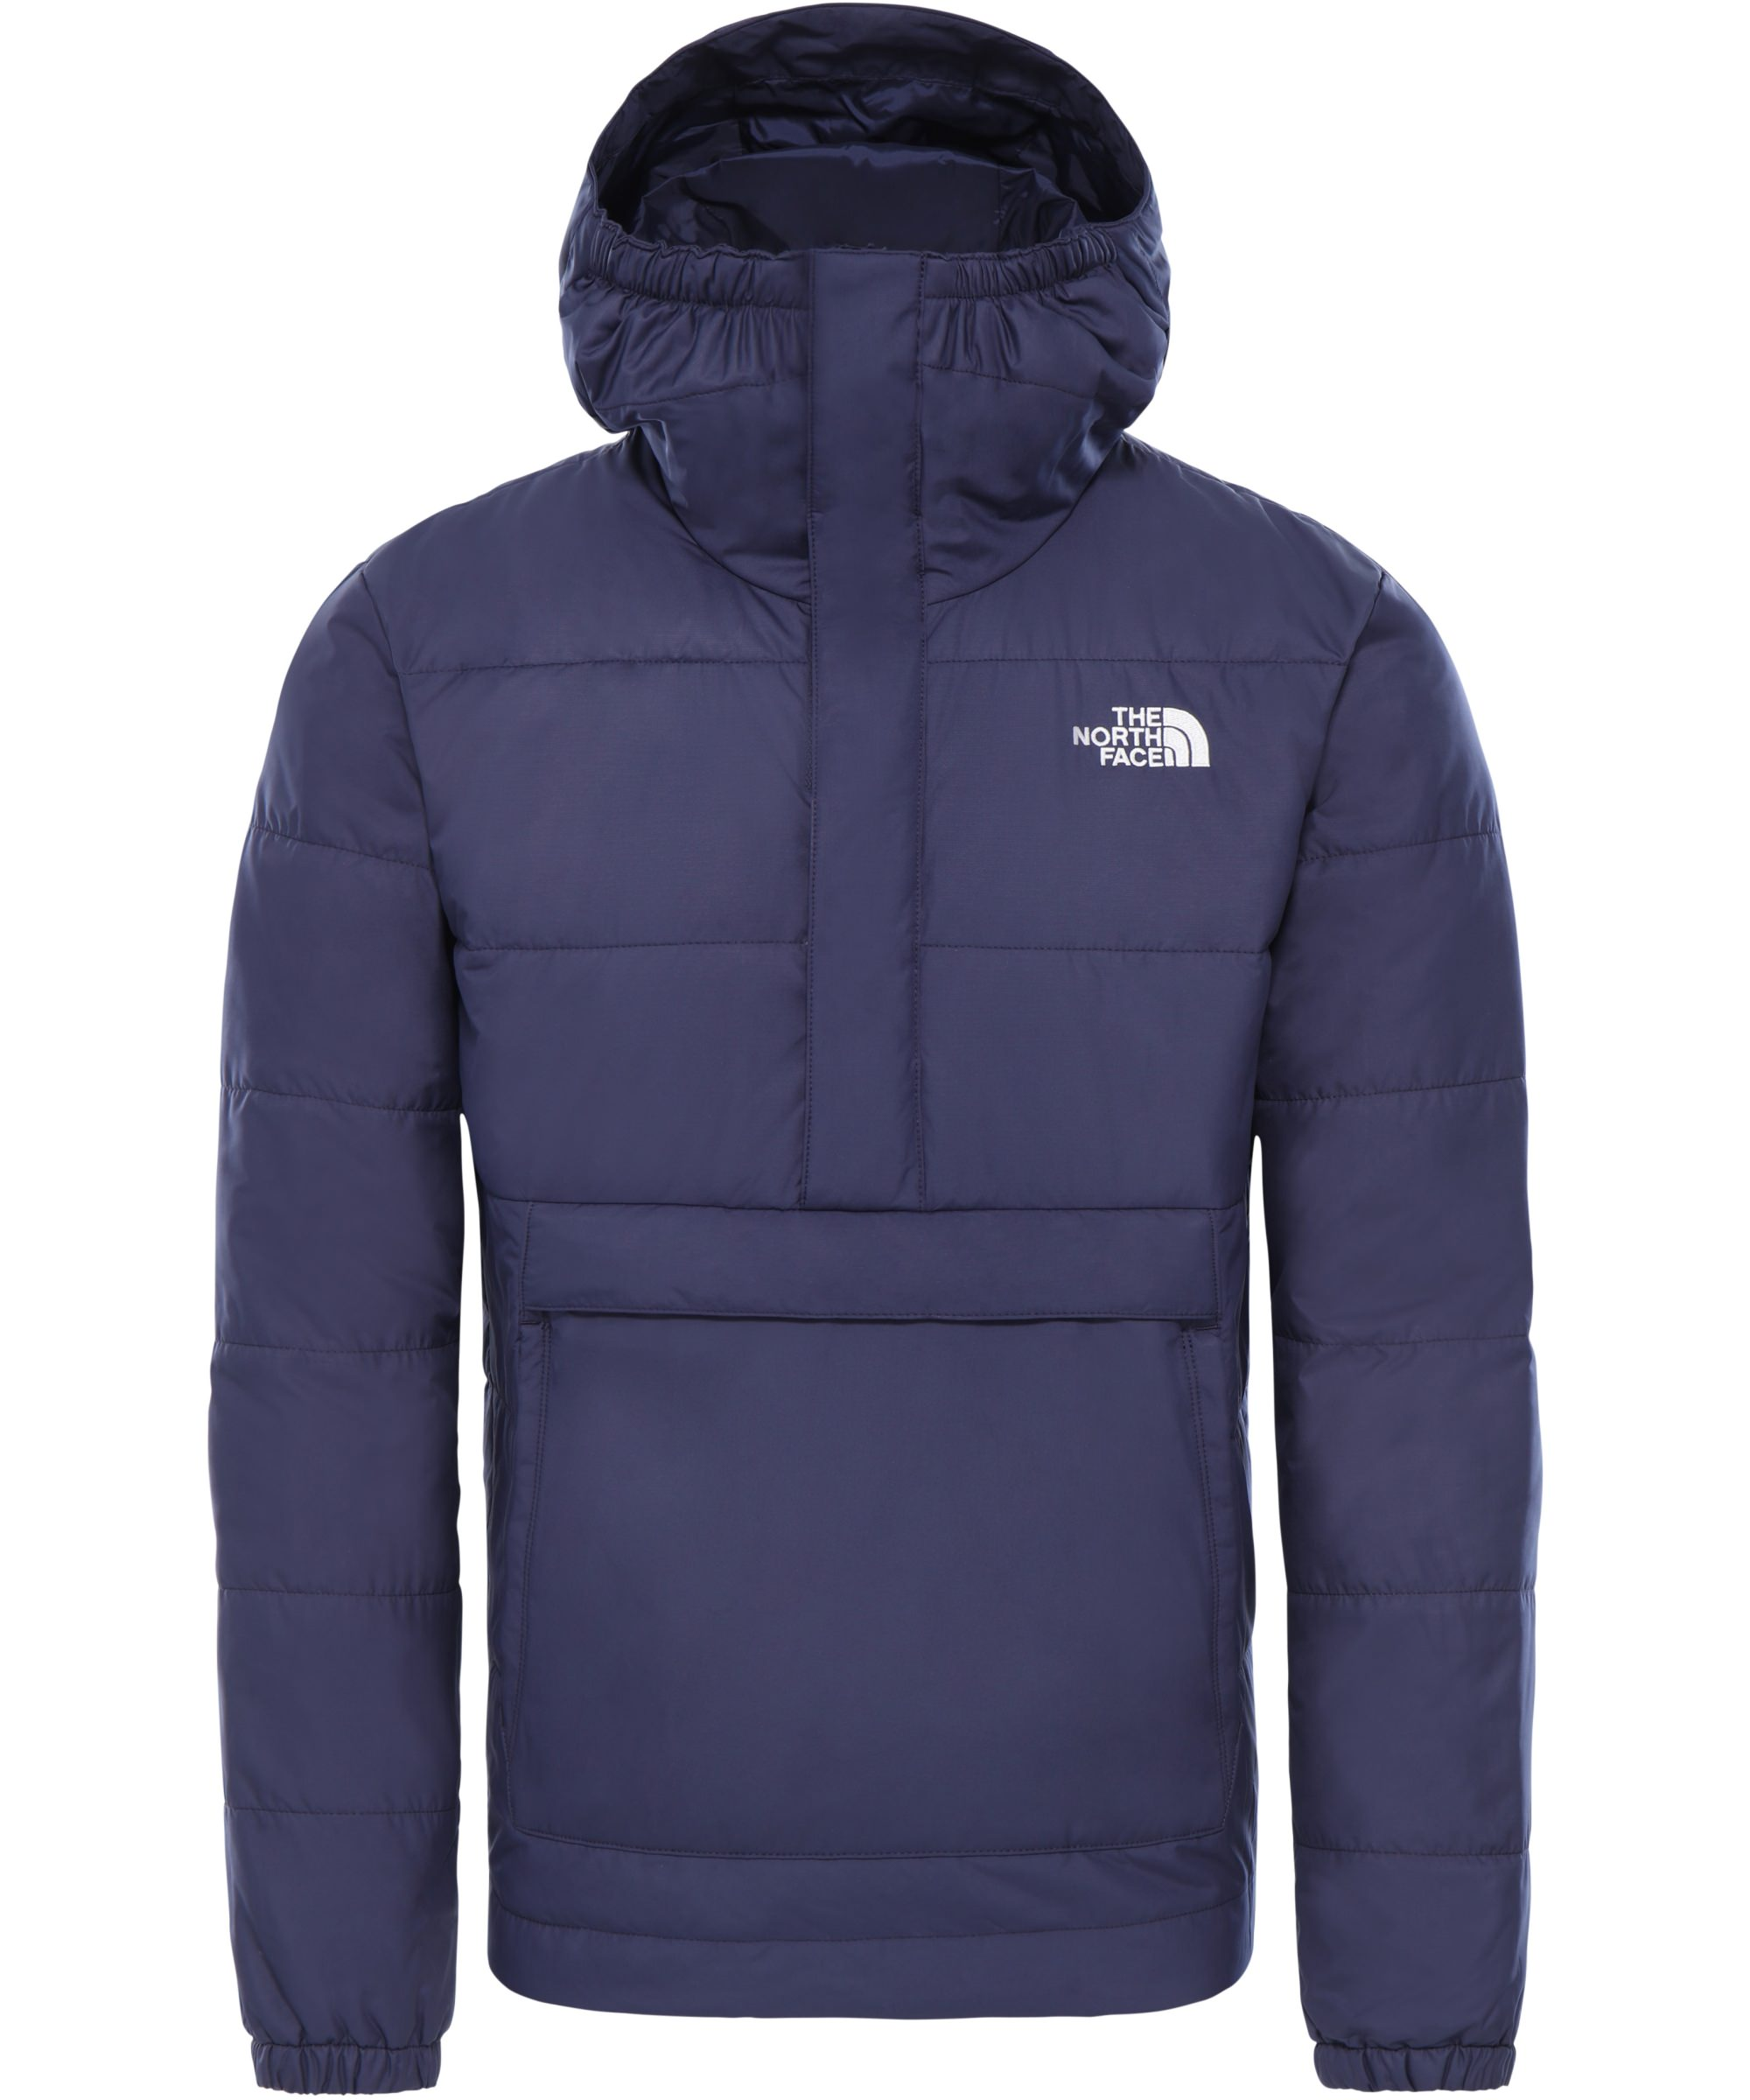 The North Face Insulated Fanorak Jacket Men